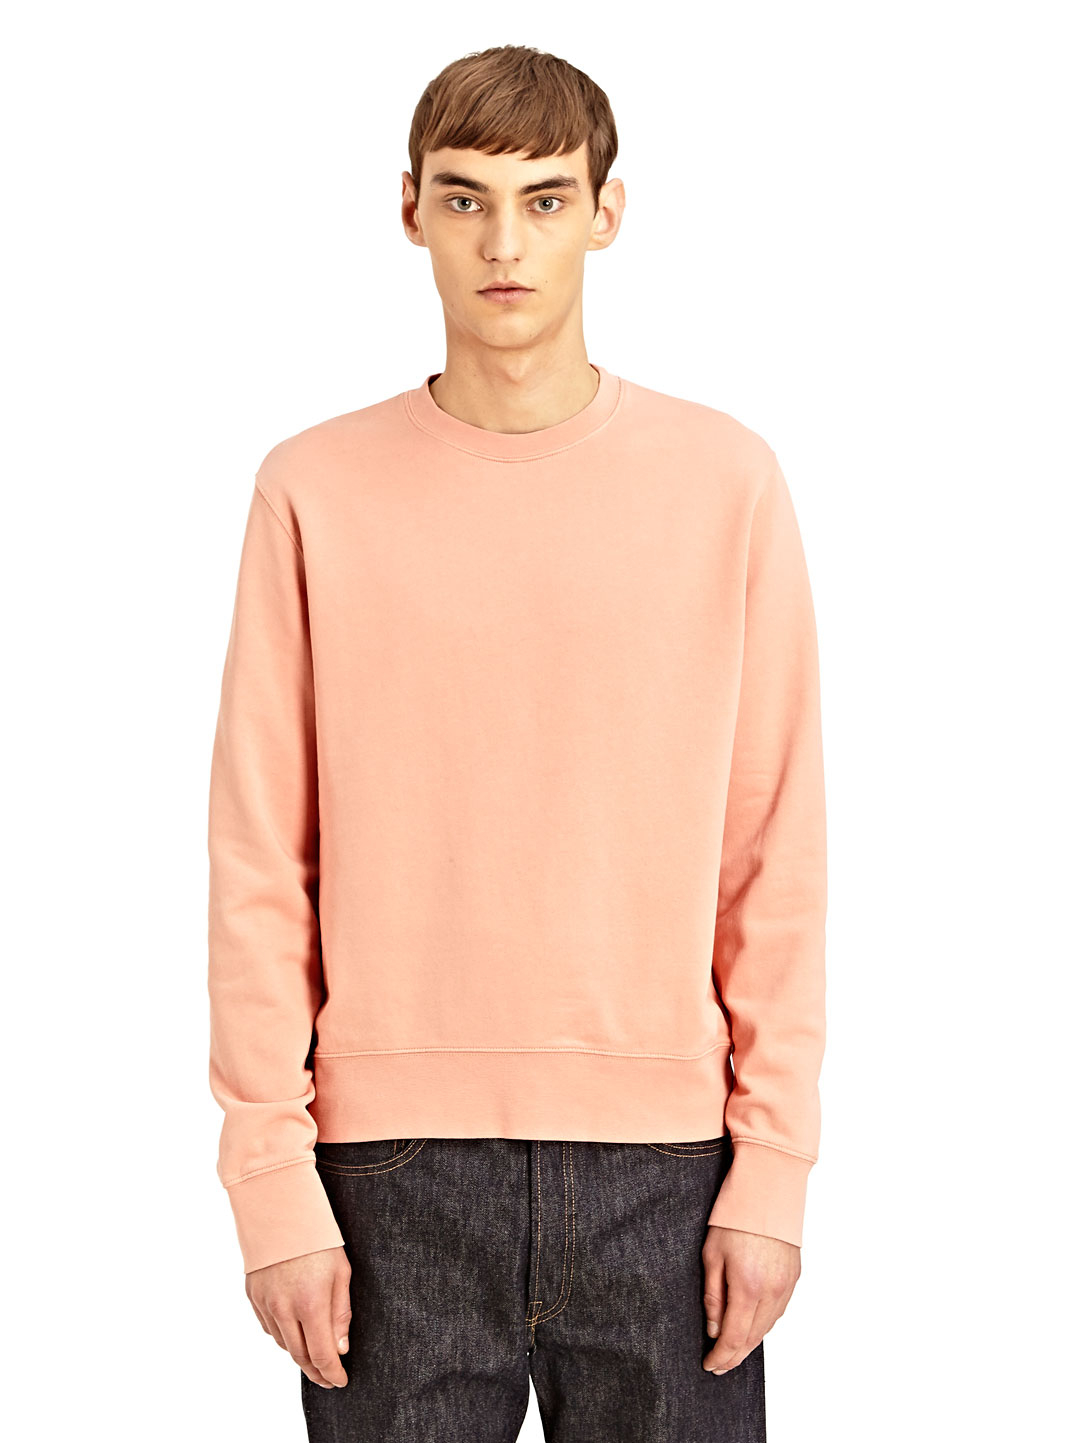 lyst acne studios studios mens crew neck casey sweatshirt in pink for men. Black Bedroom Furniture Sets. Home Design Ideas